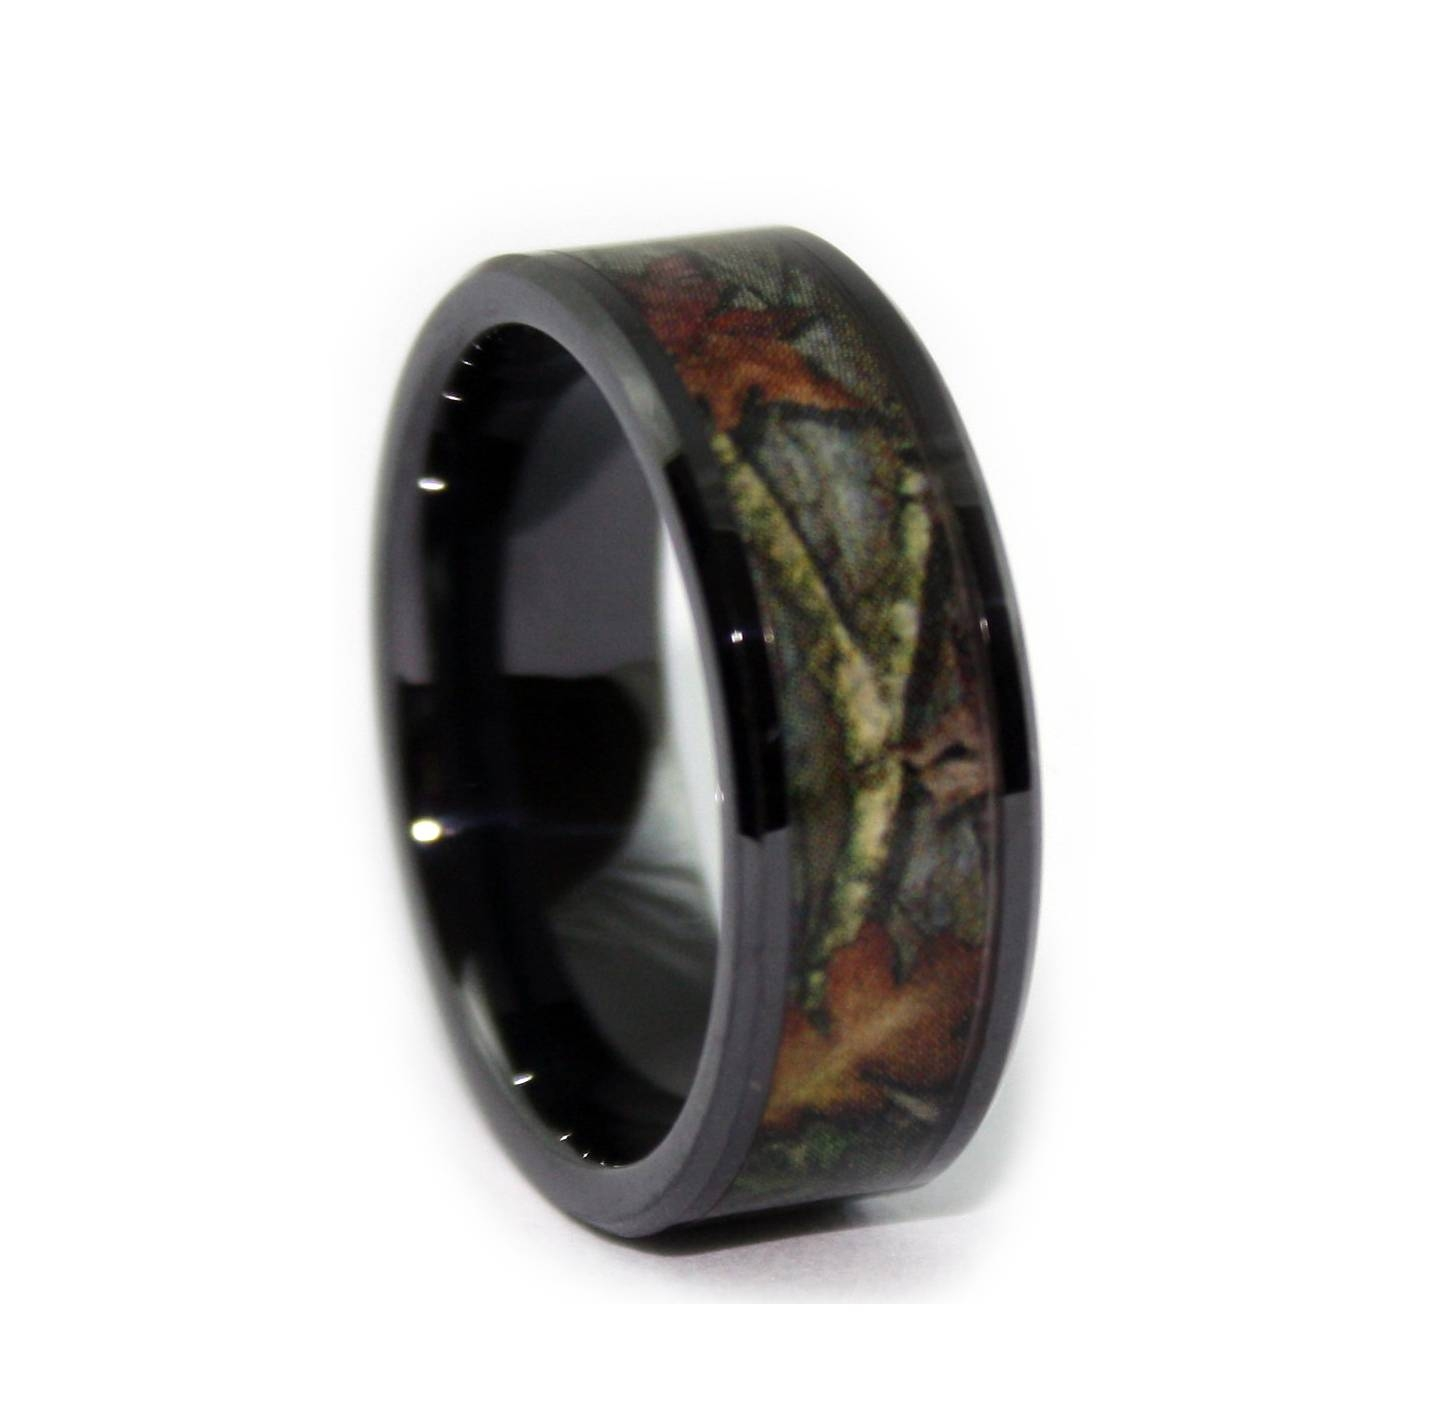 Camo Wedding Rings – Black Ceramic Ring – Camouflage Band Regarding Outdoorsman Wedding Bands (Gallery 10 of 15)